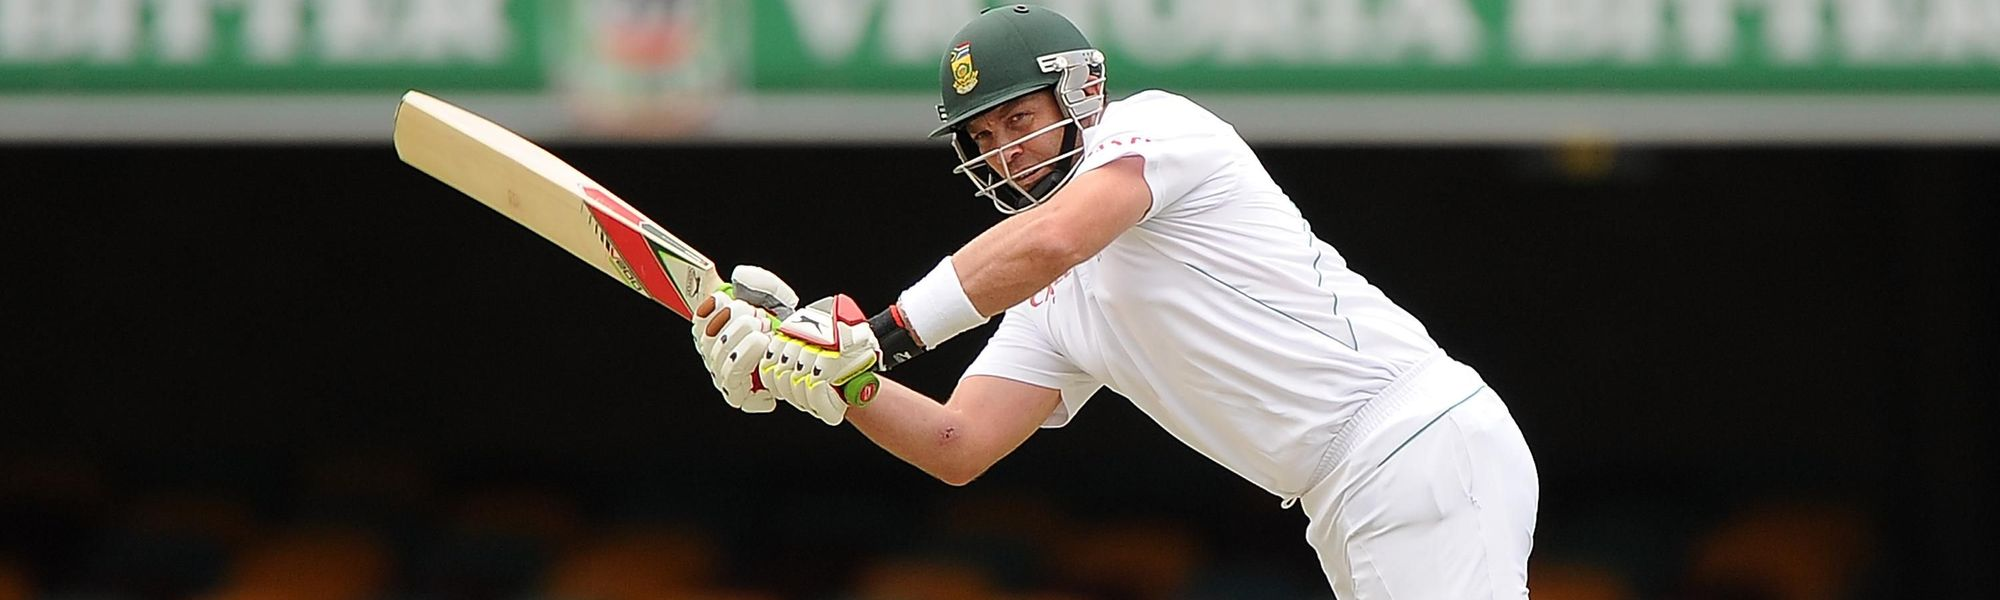 Jacques Kallis is one of only three non-wicket-keepers to take more than 200 catches in Test cricket